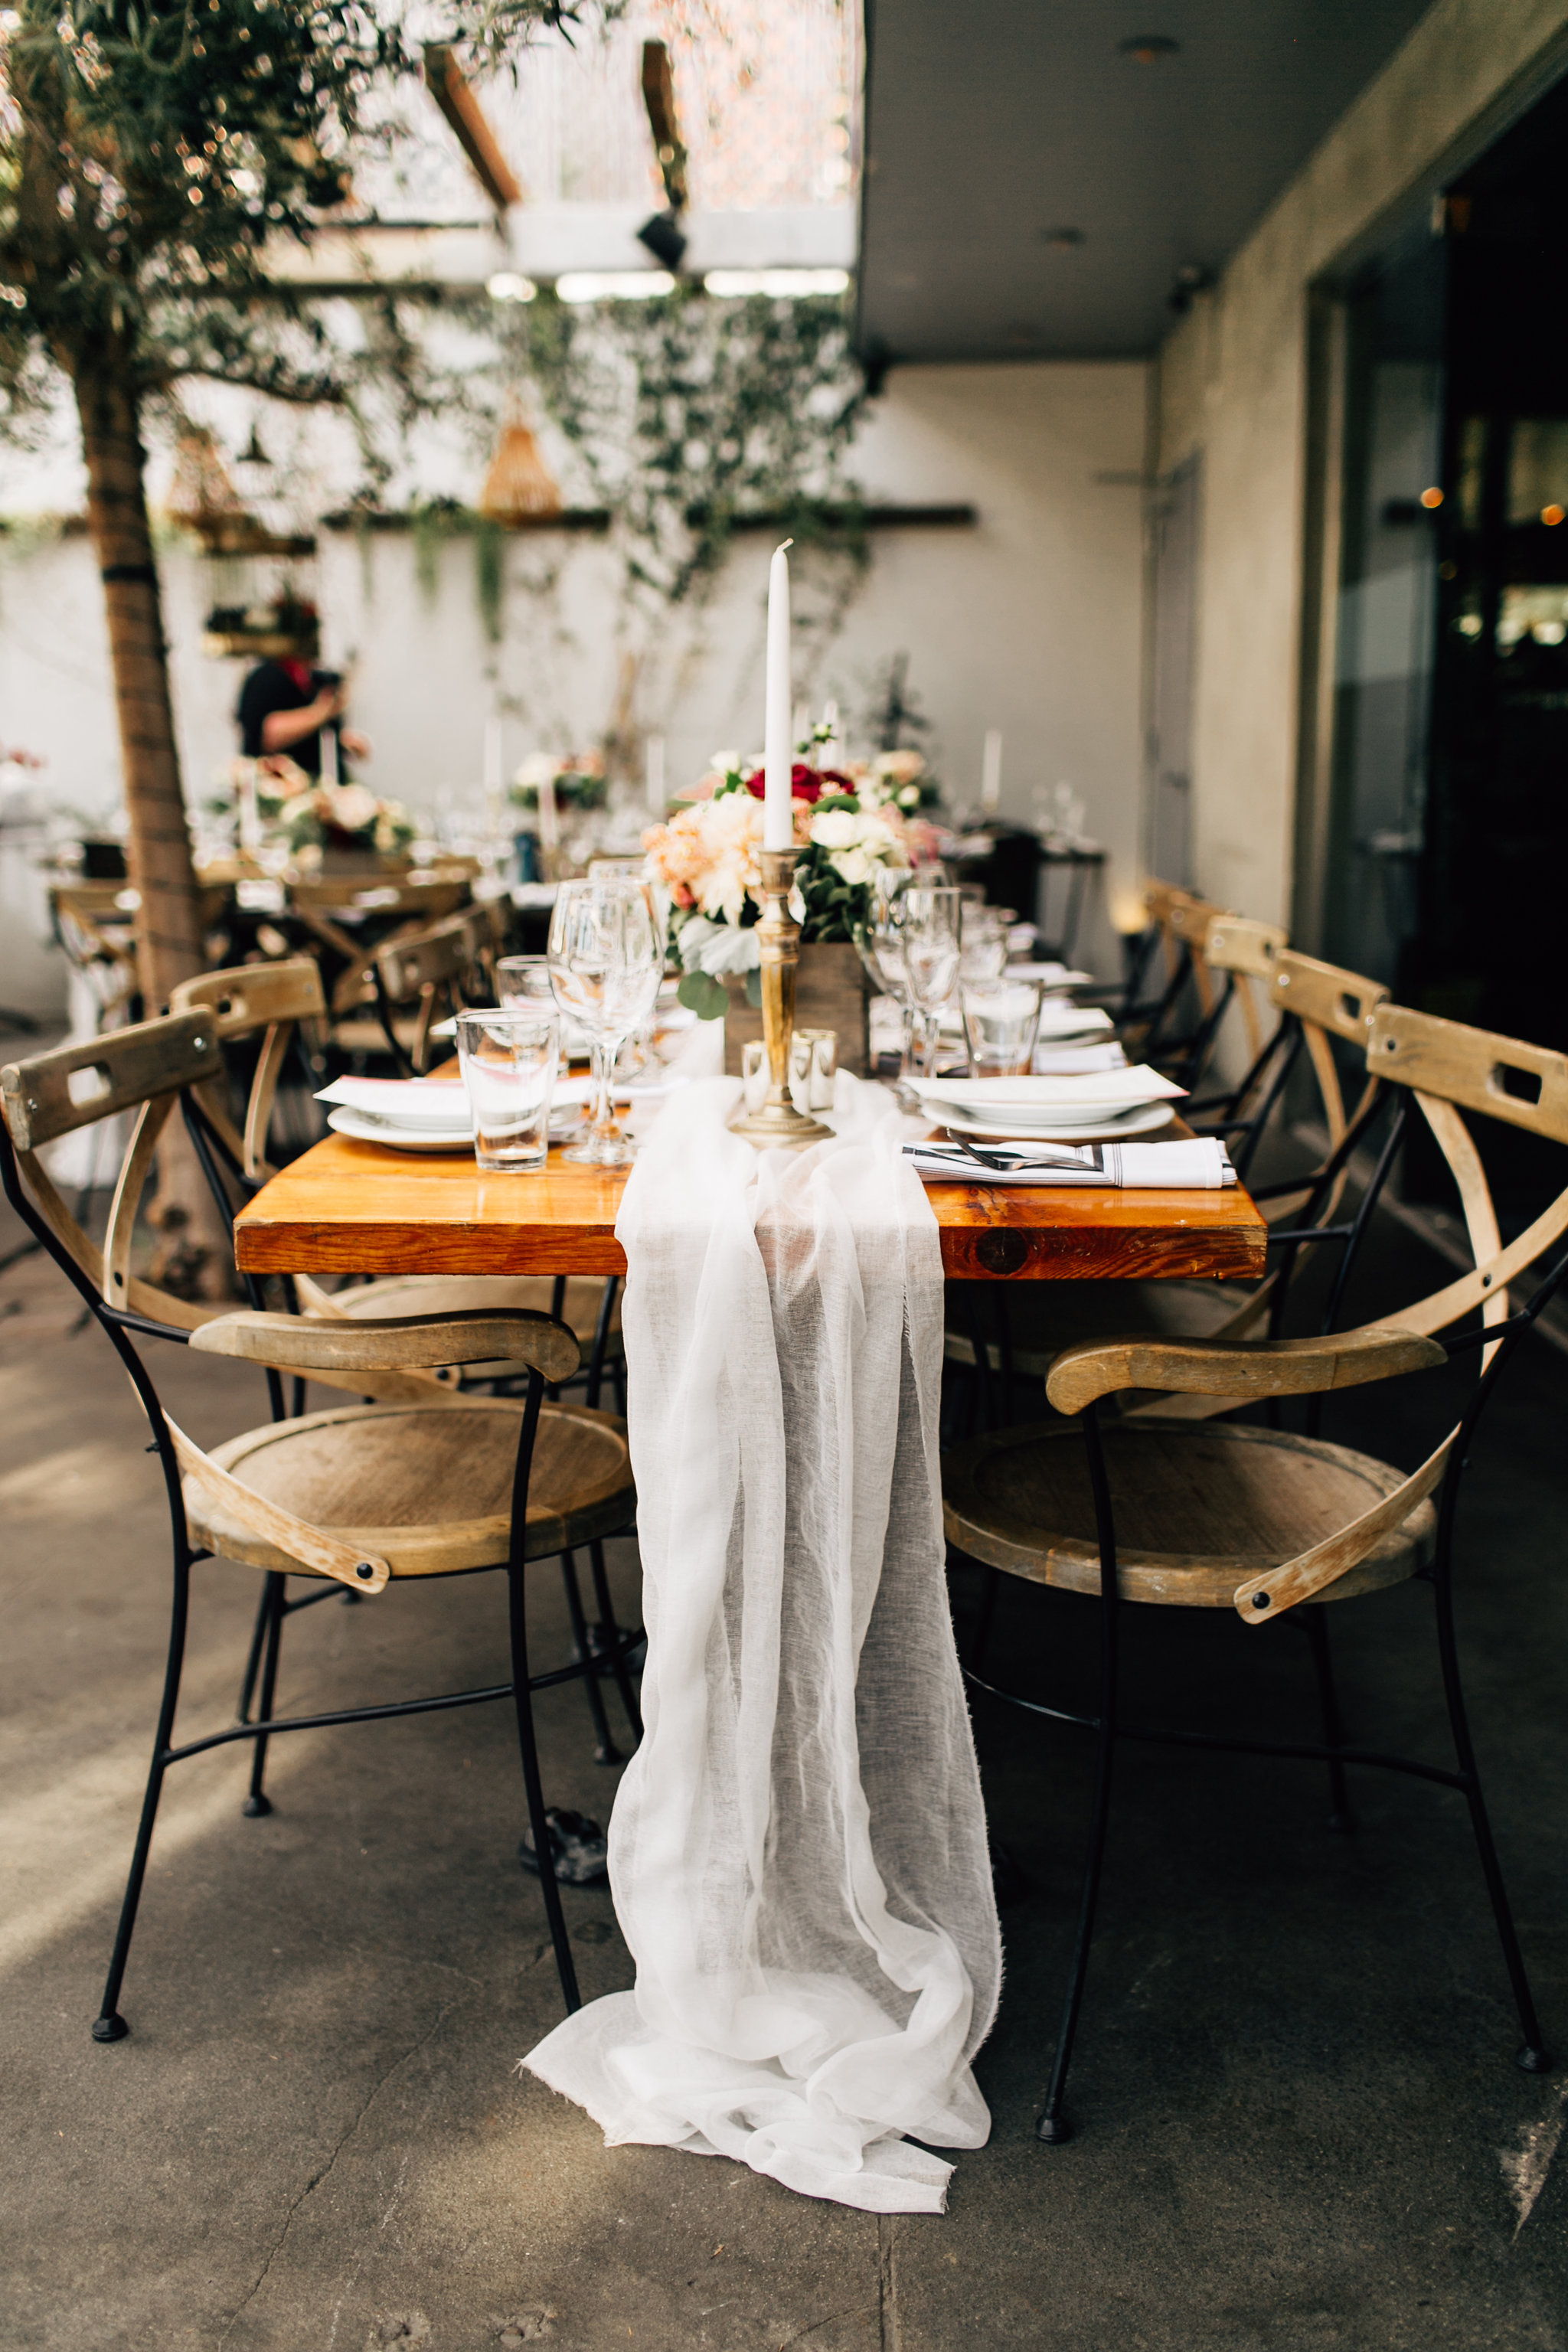 Mr. and Mrs. Grady - Jenna Bechtholt Photography - Wedding at Madera Kitchen --10